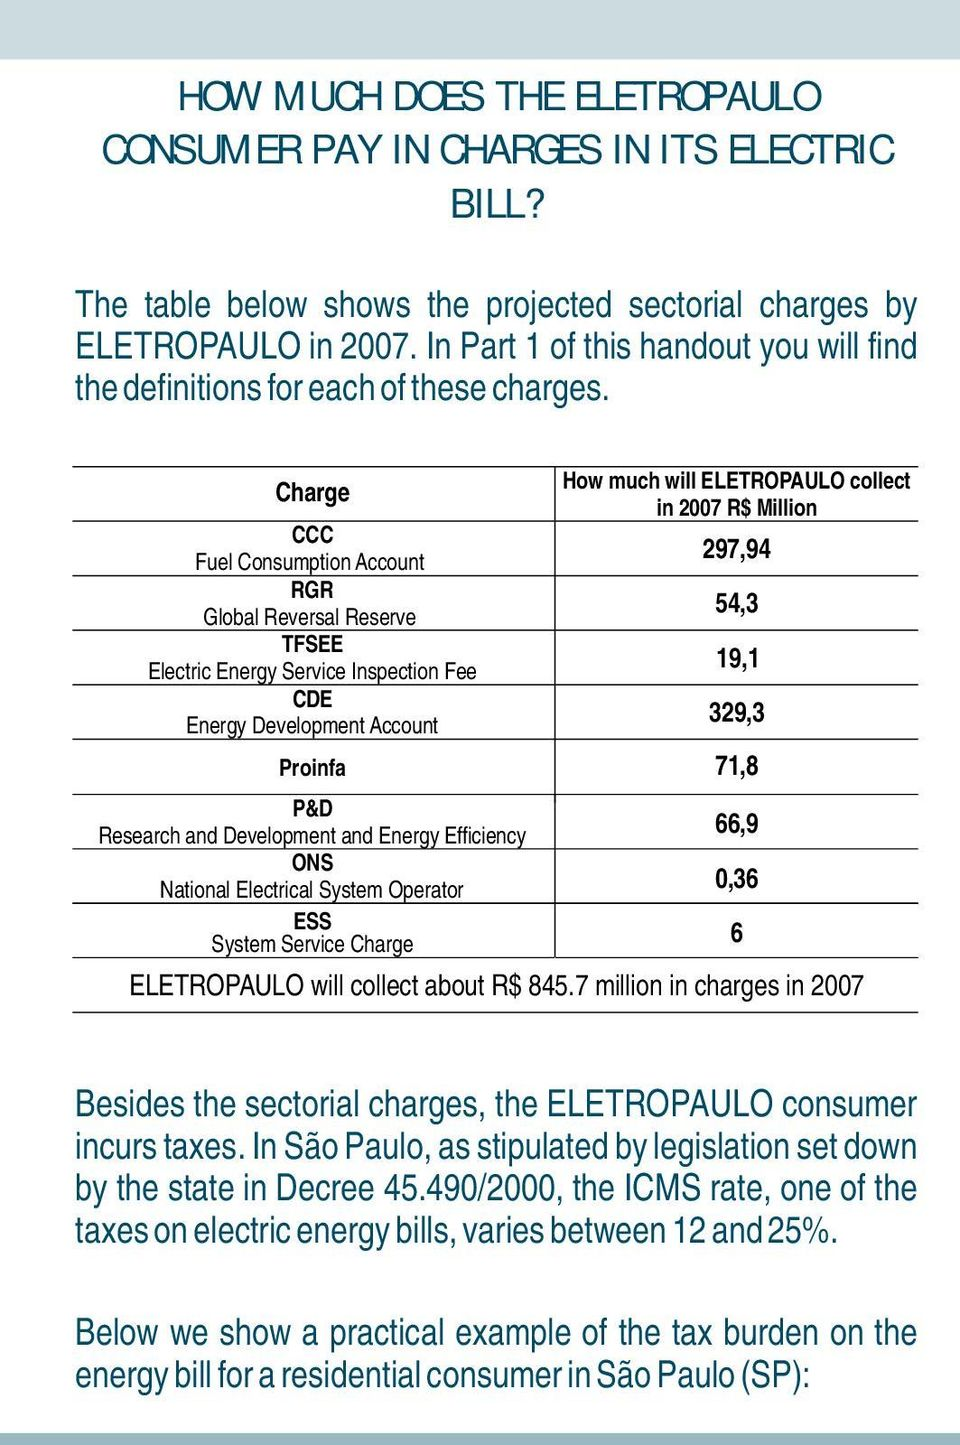 Charge Ccc Fuel Consumption Account Rgr Global Reversal Reserve Tfsee Electric Energy Service Inspection Fee Cde